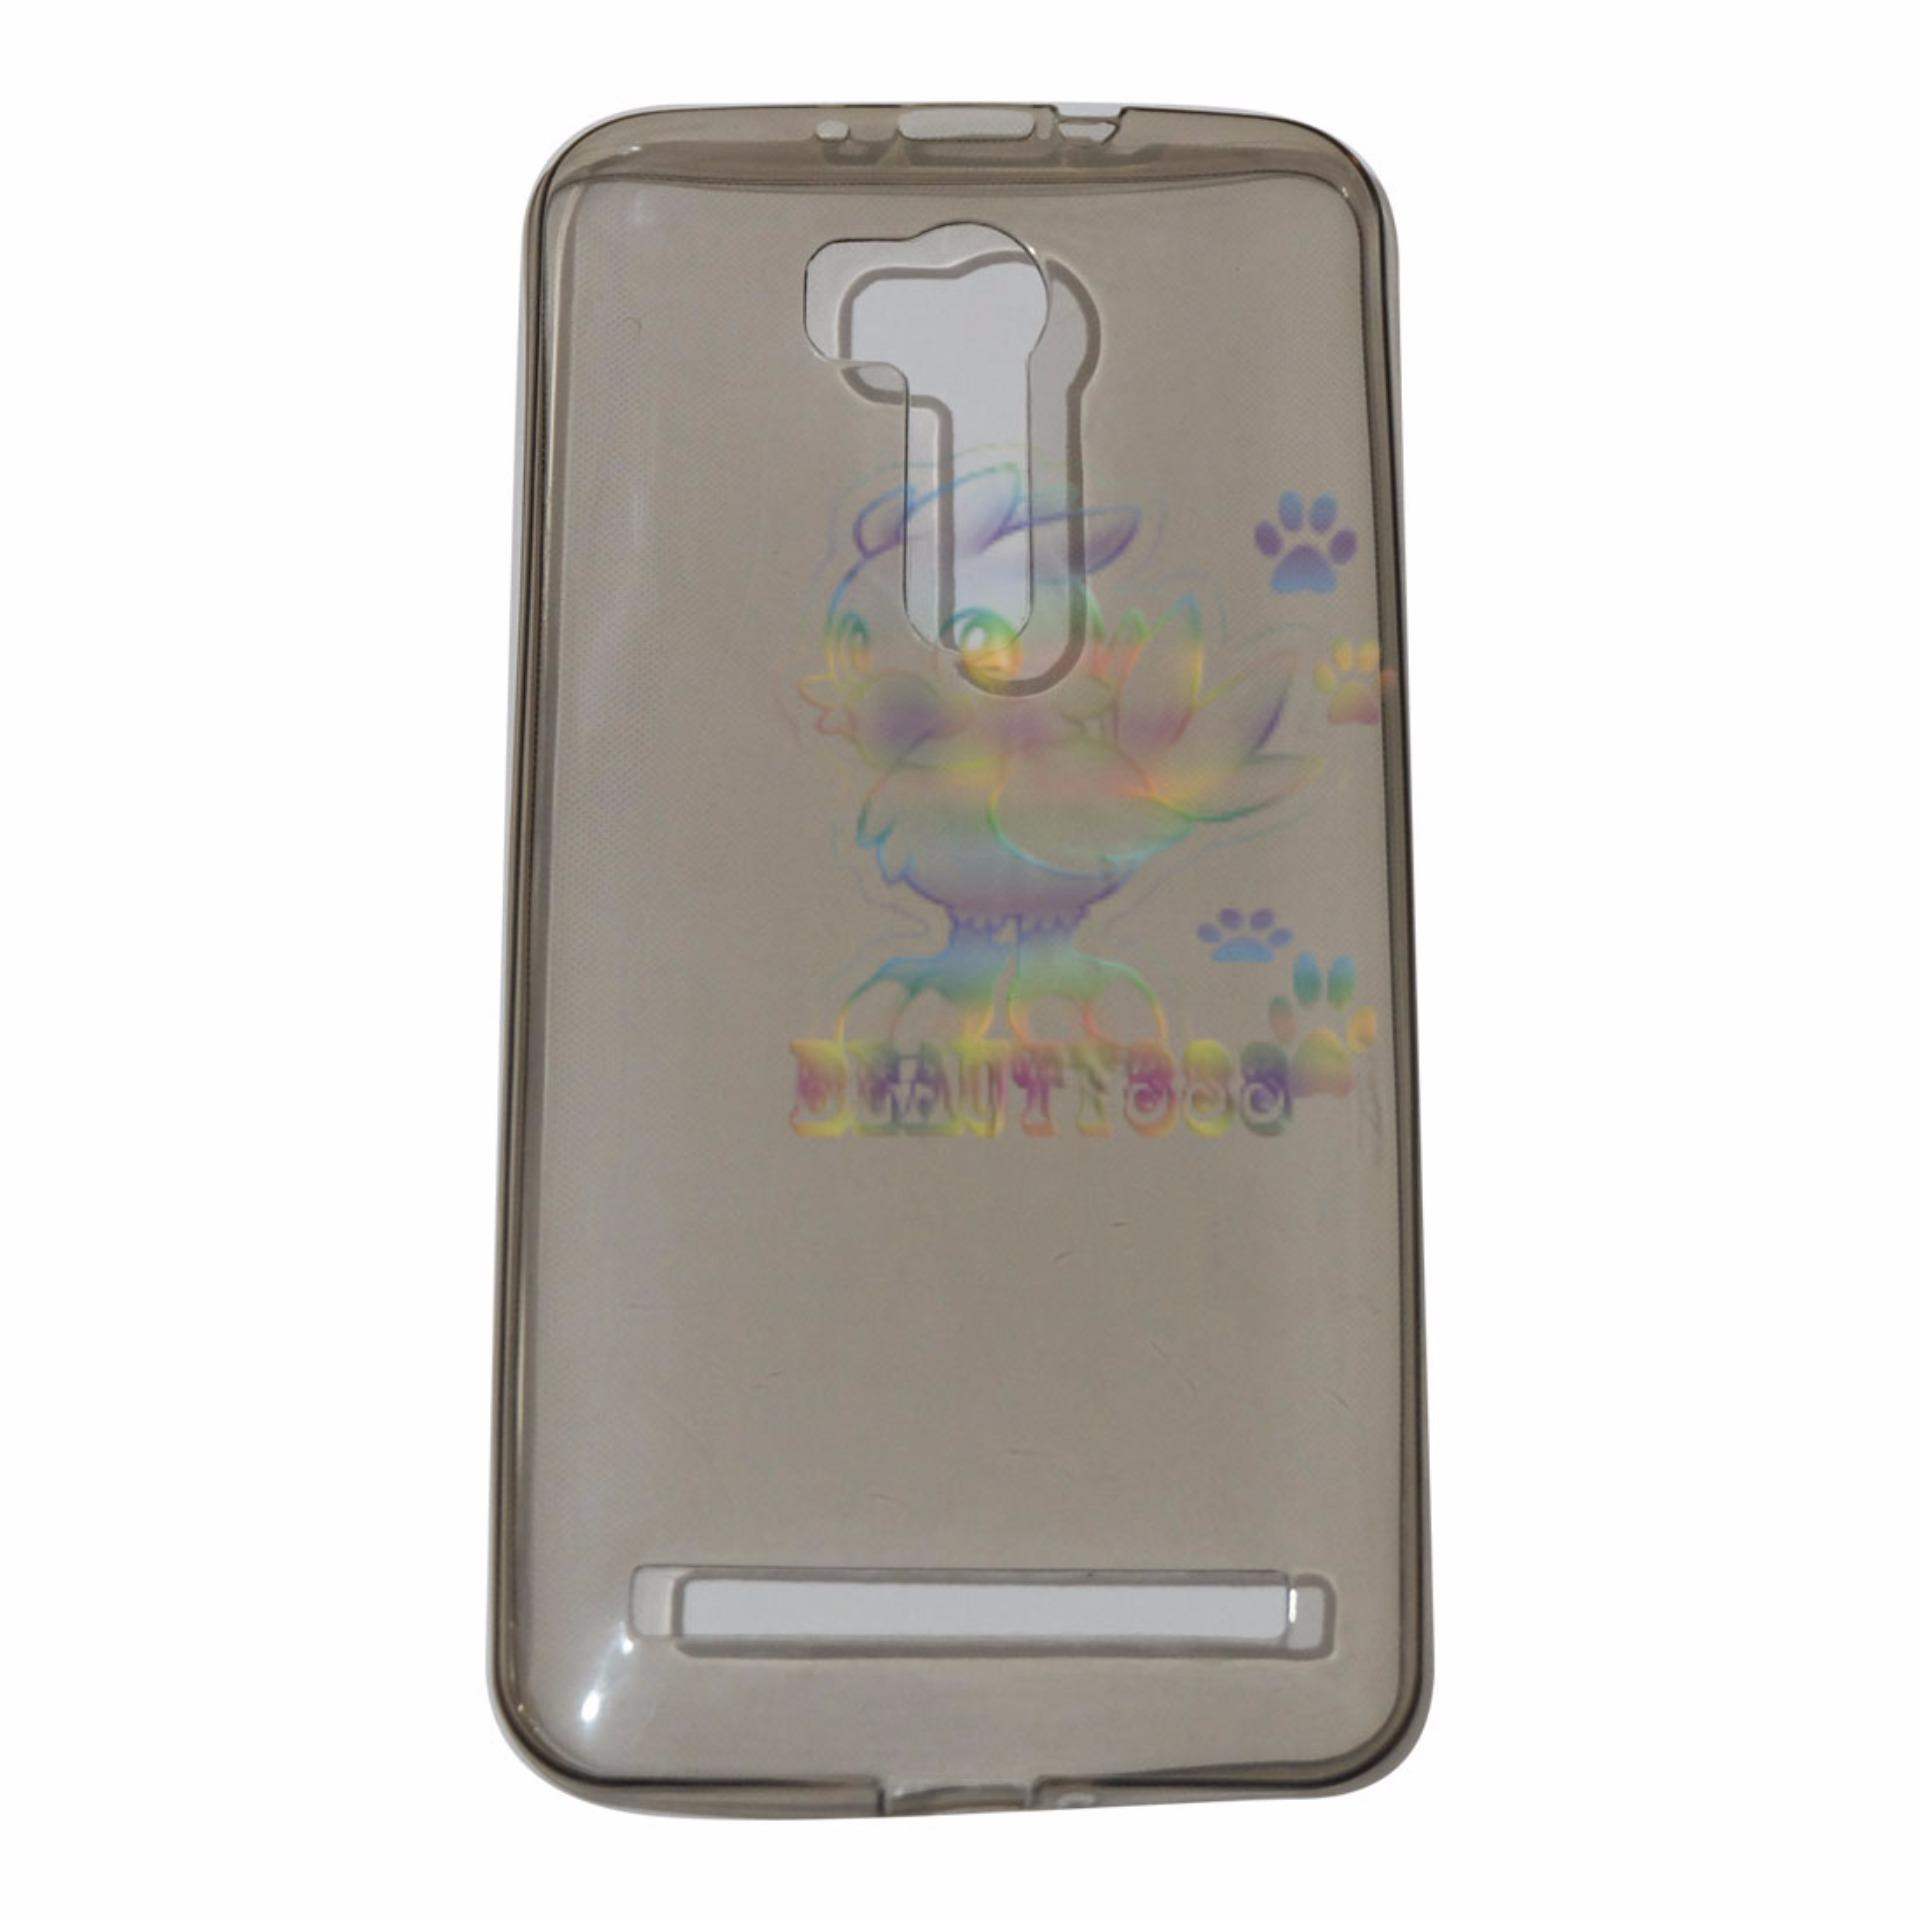 ... Ultrathin For Asus Zenfone Go TV Ukuran 5.5 inch ZB551KL UltrathinJelly Air Case 0.3mm Soft ...